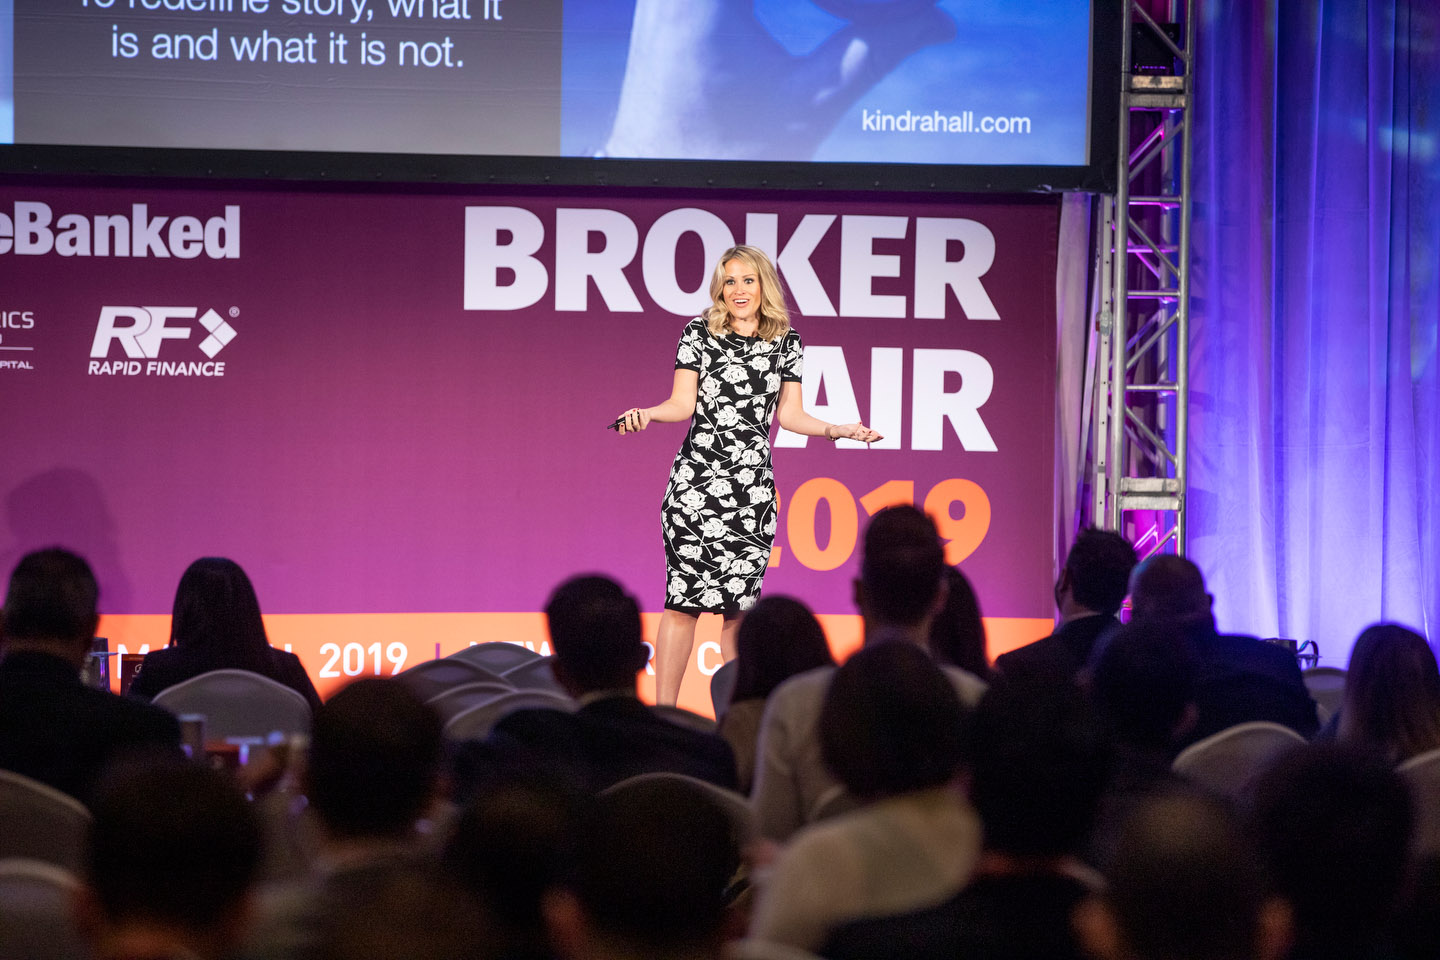 Broker Fair 2019 - Presented by deBanked - 379